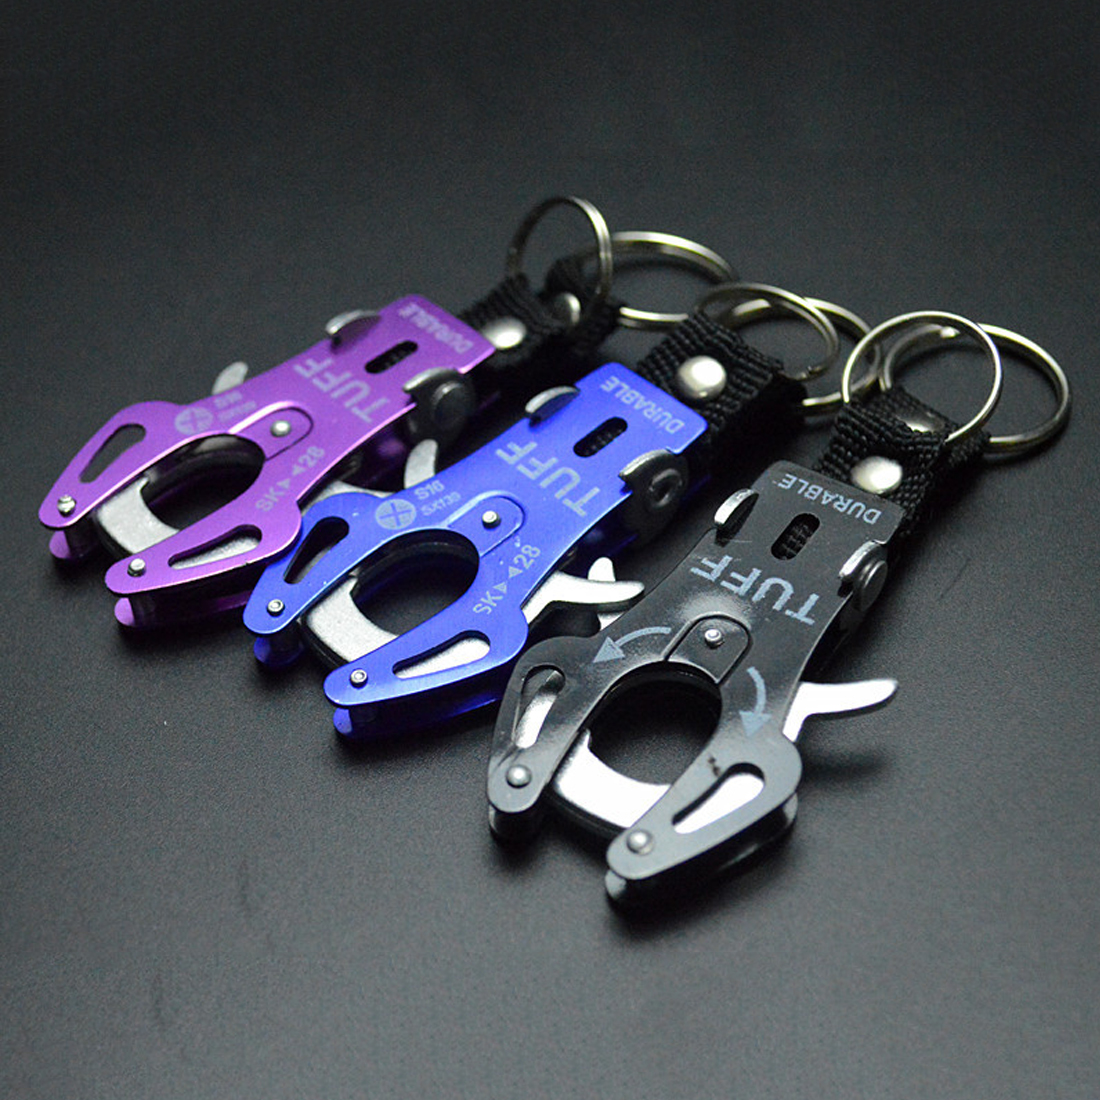 Aluminum Alloy Tiger Buckle Fast Hang Carabiner Hook Travel Kits Camping Equipment Outdoor Survival Gear Mountaineering Hook